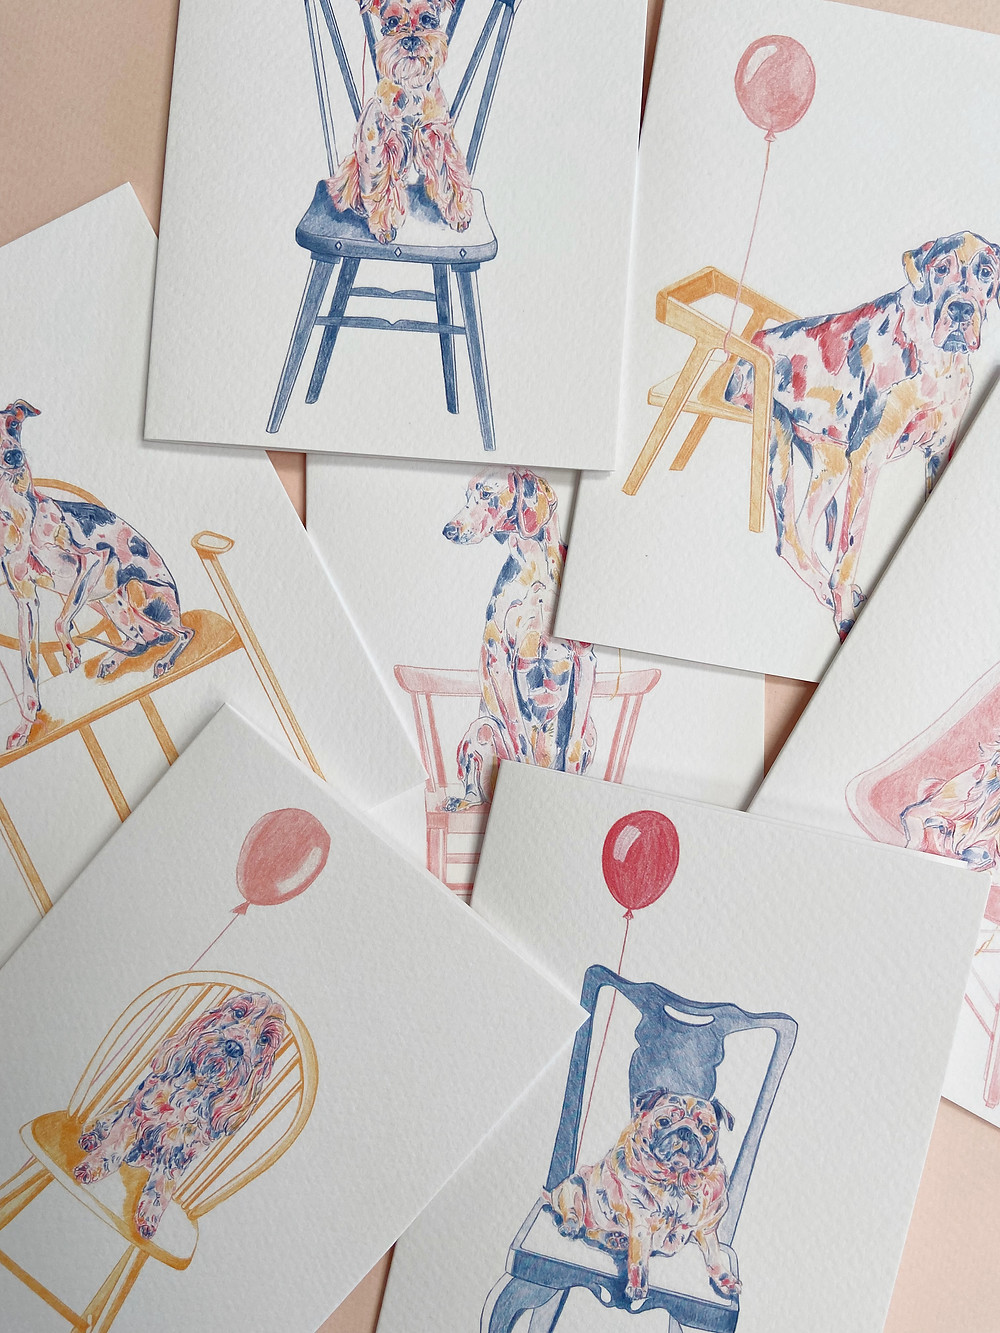 Colourful drawings of dogs on chairs with balloons. Birthday cards.